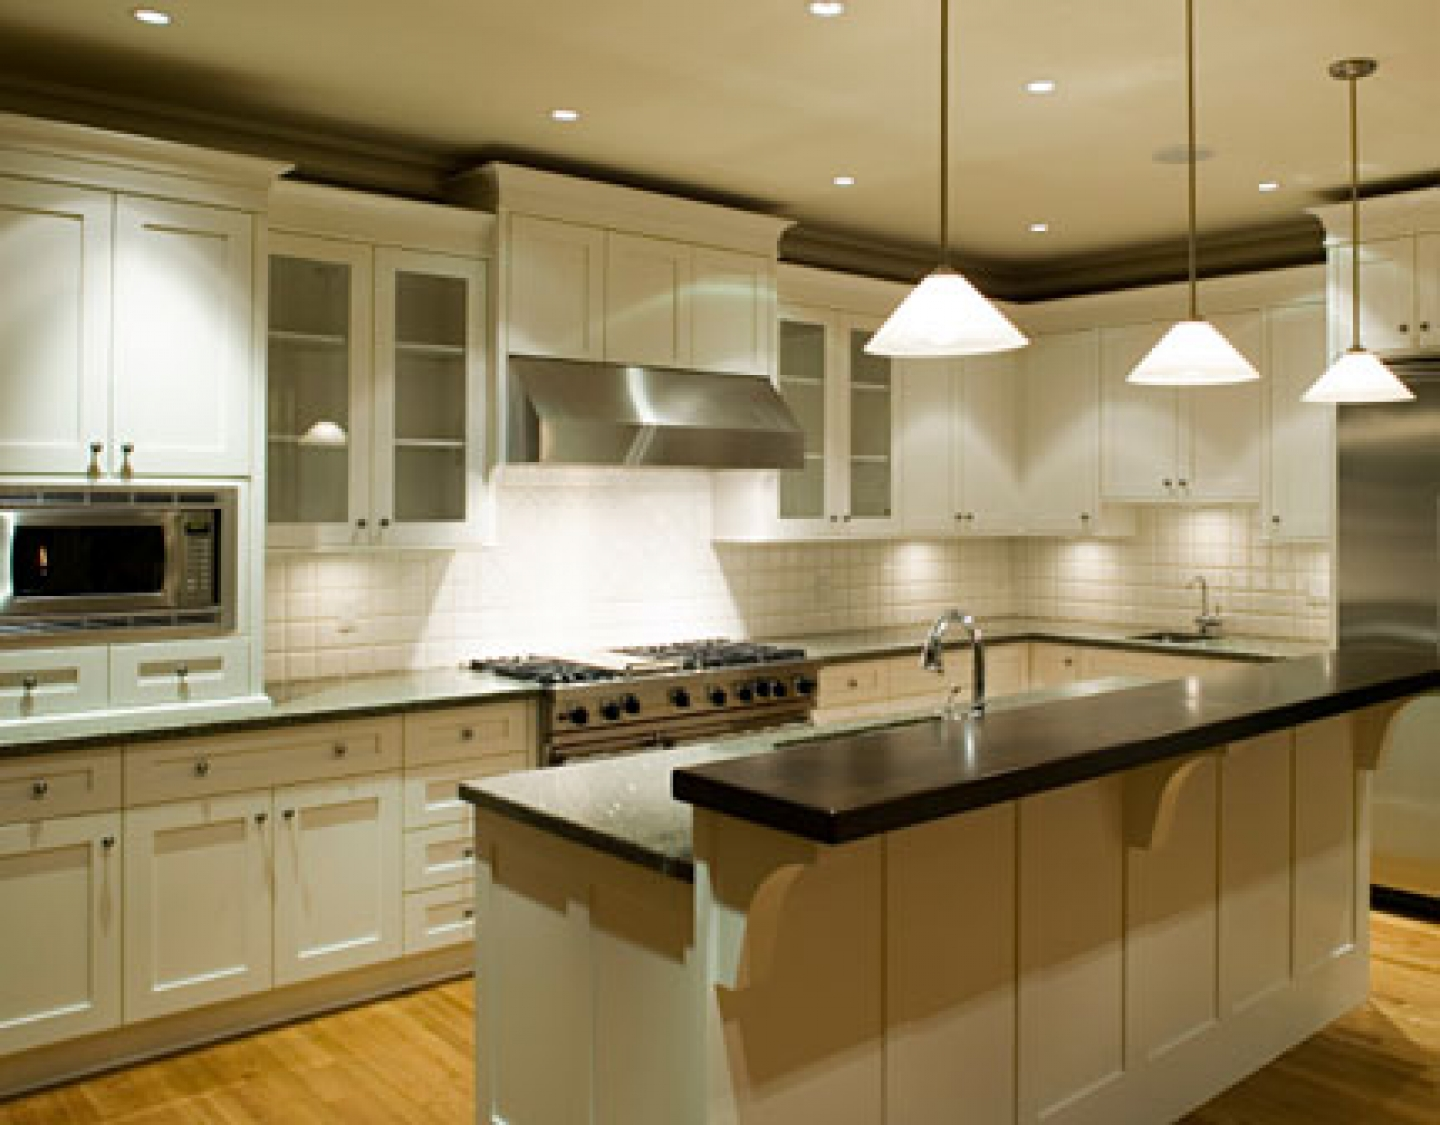 White kitchen cabinets stylize your house cabinets direct for White kitchen cabinets ideas